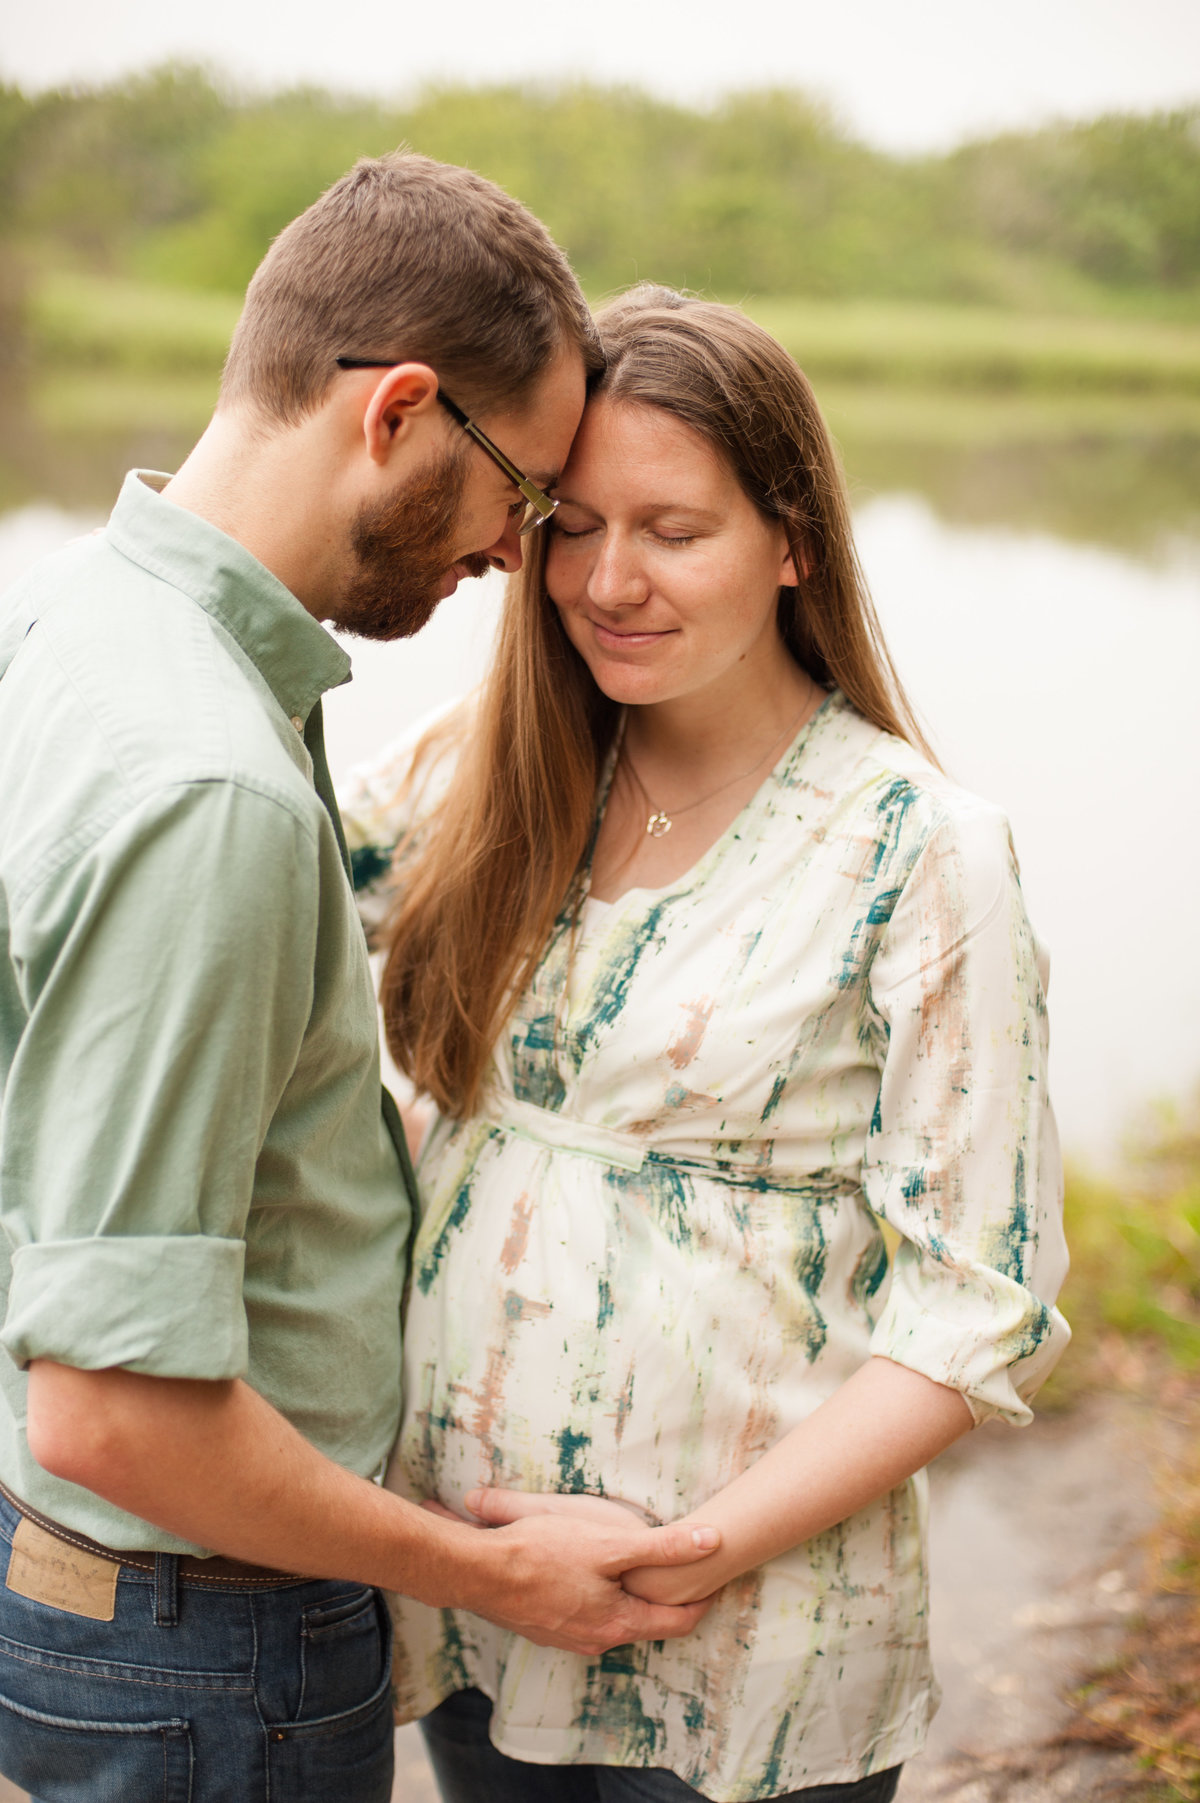 Ormond Beach maternity and family photography